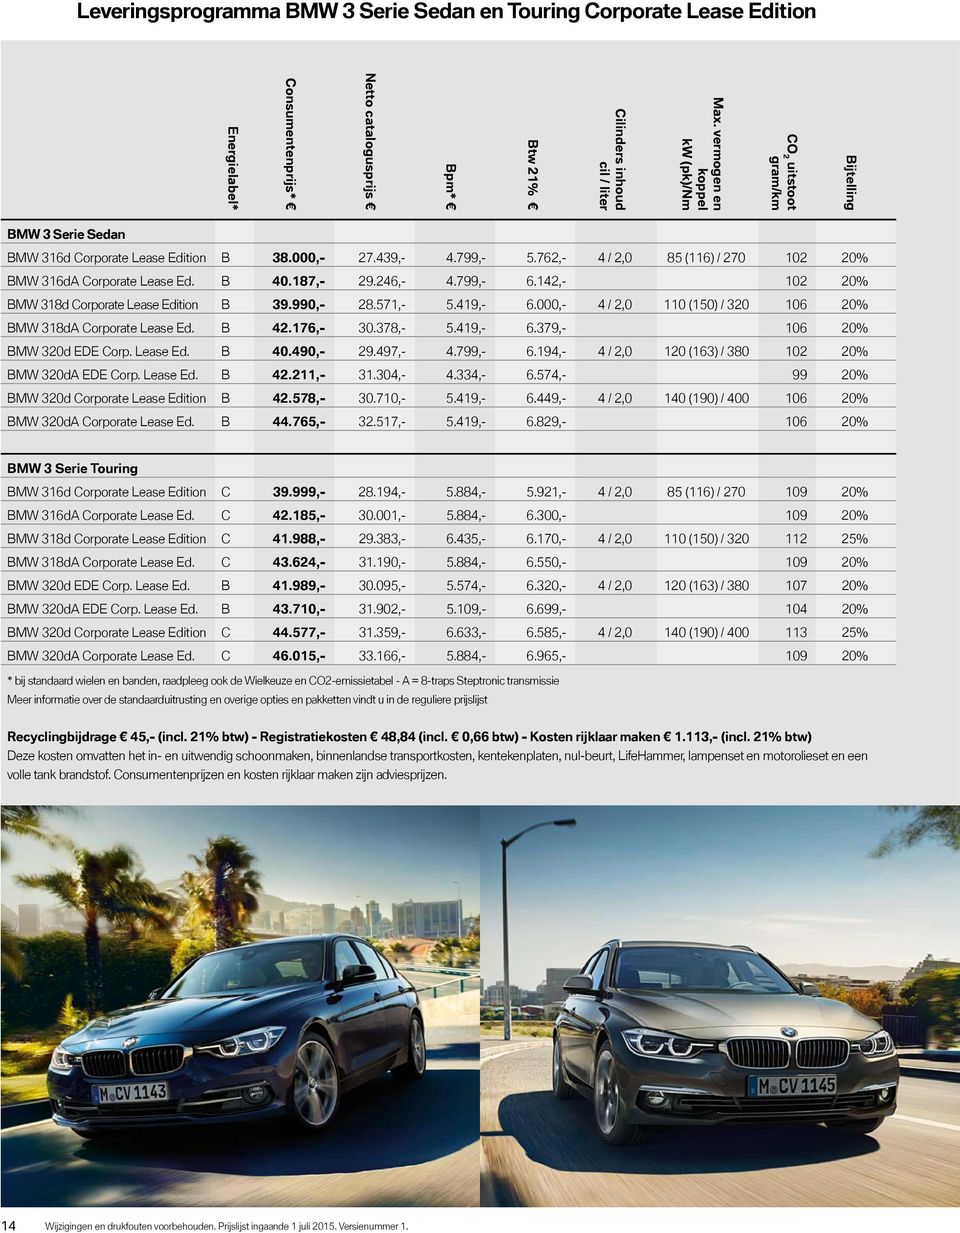 762,- 4 / 2,0 85 (116) / 270 102 20% BMW 316dA Corporate Lease Ed. B 40.187,- 29.246,- 4.799,- 6.142,- 102 20% BMW 318d Corporate Lease Edition B 39.990,- 28.571,- 5.419,- 6.